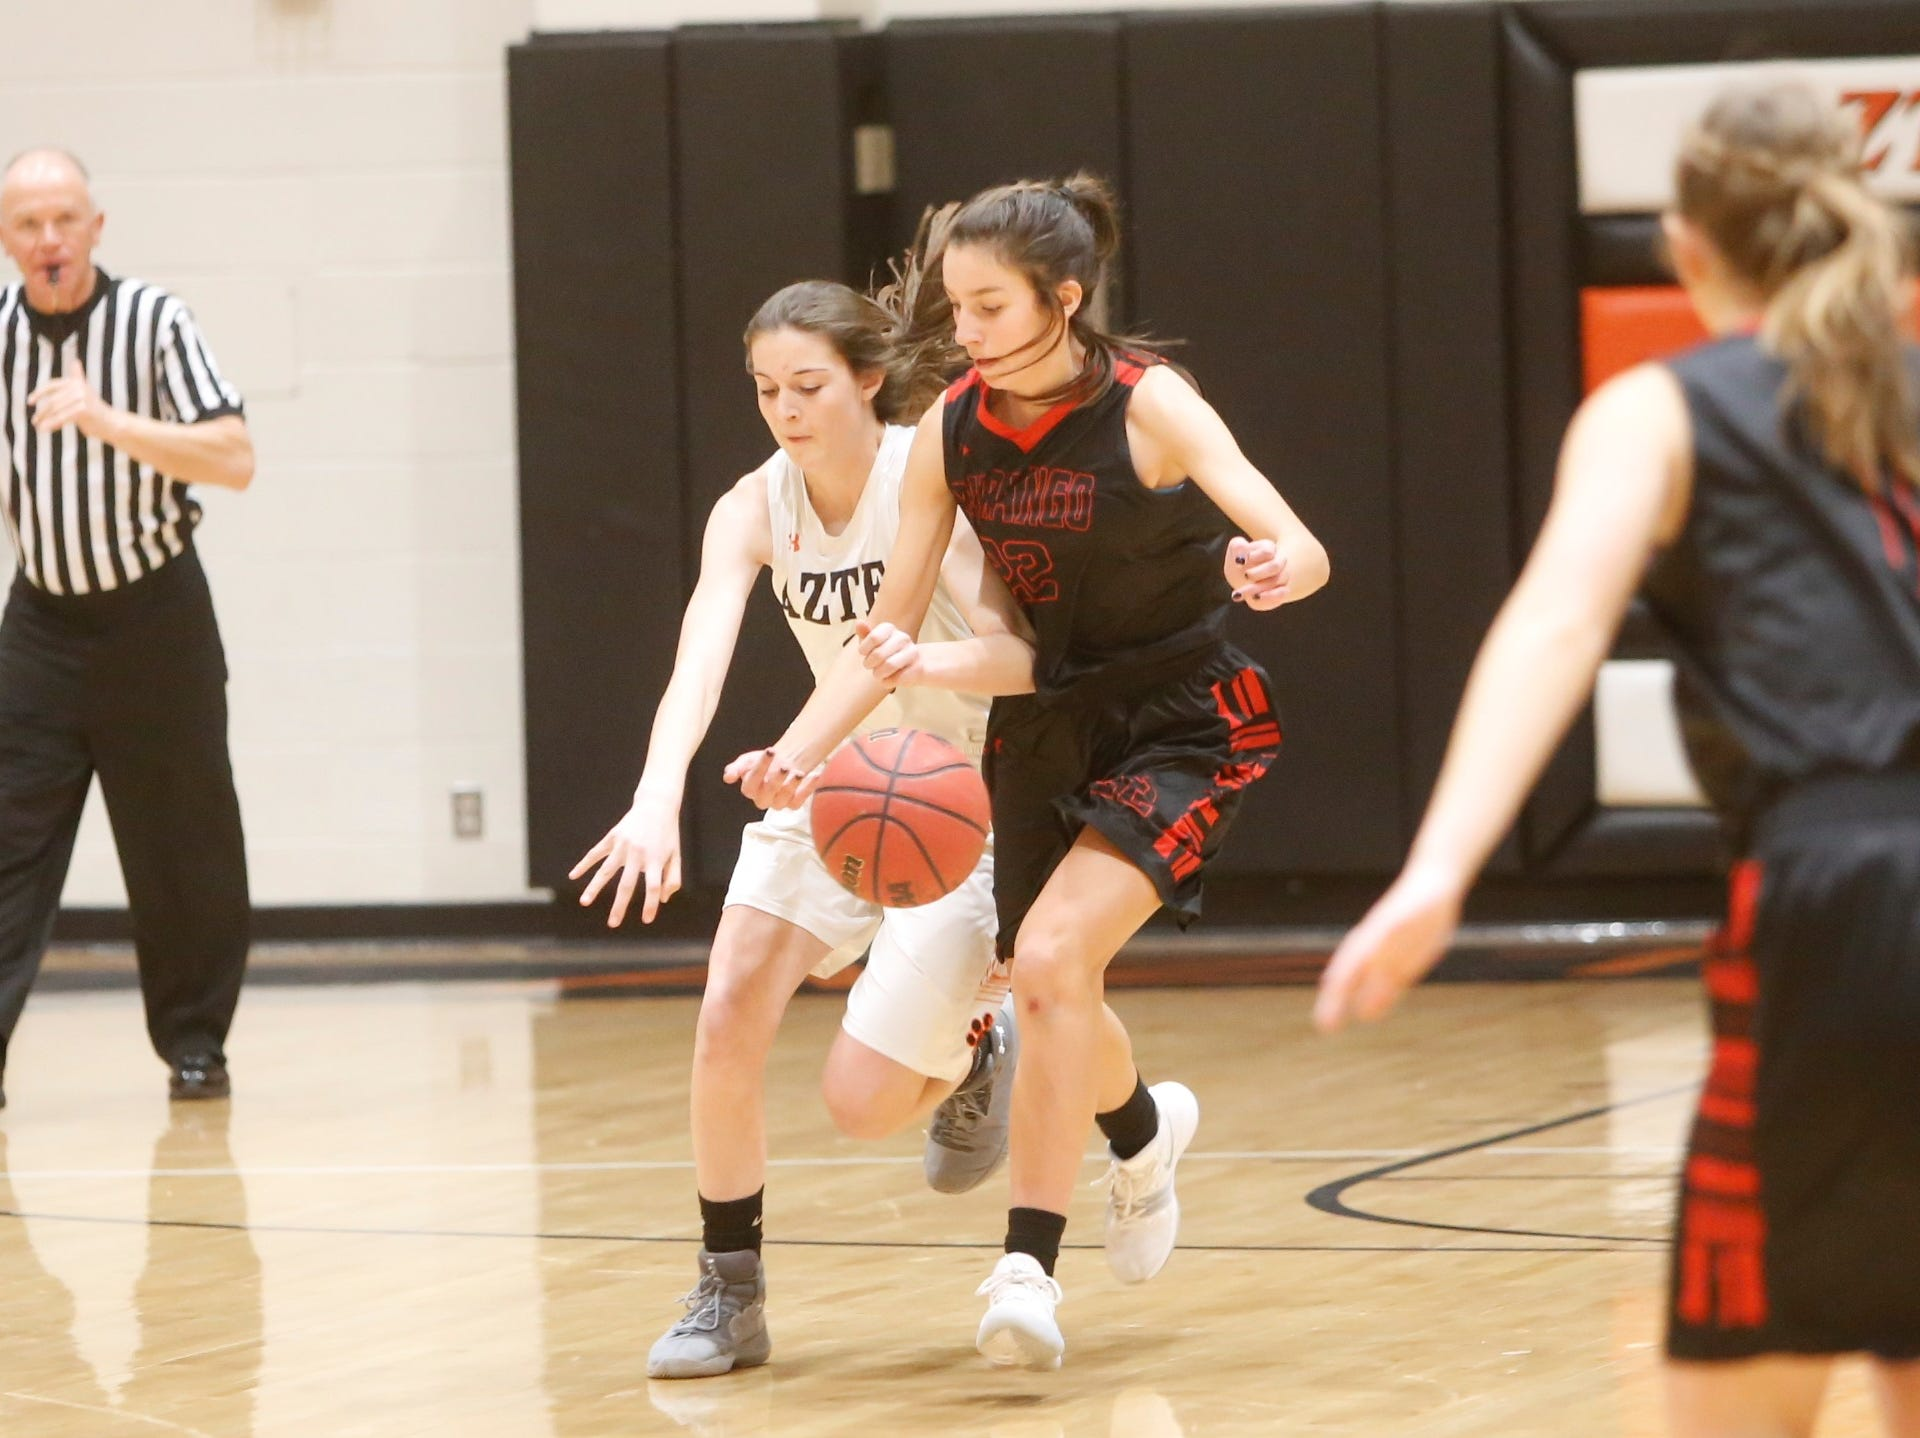 Durango's Maddy McManus swipes the ball away from Aztec's Daniella Sanders to force a turnover during the Rumble in the Jungle championship game Saturday at Lillywhite Gym in Aztec.